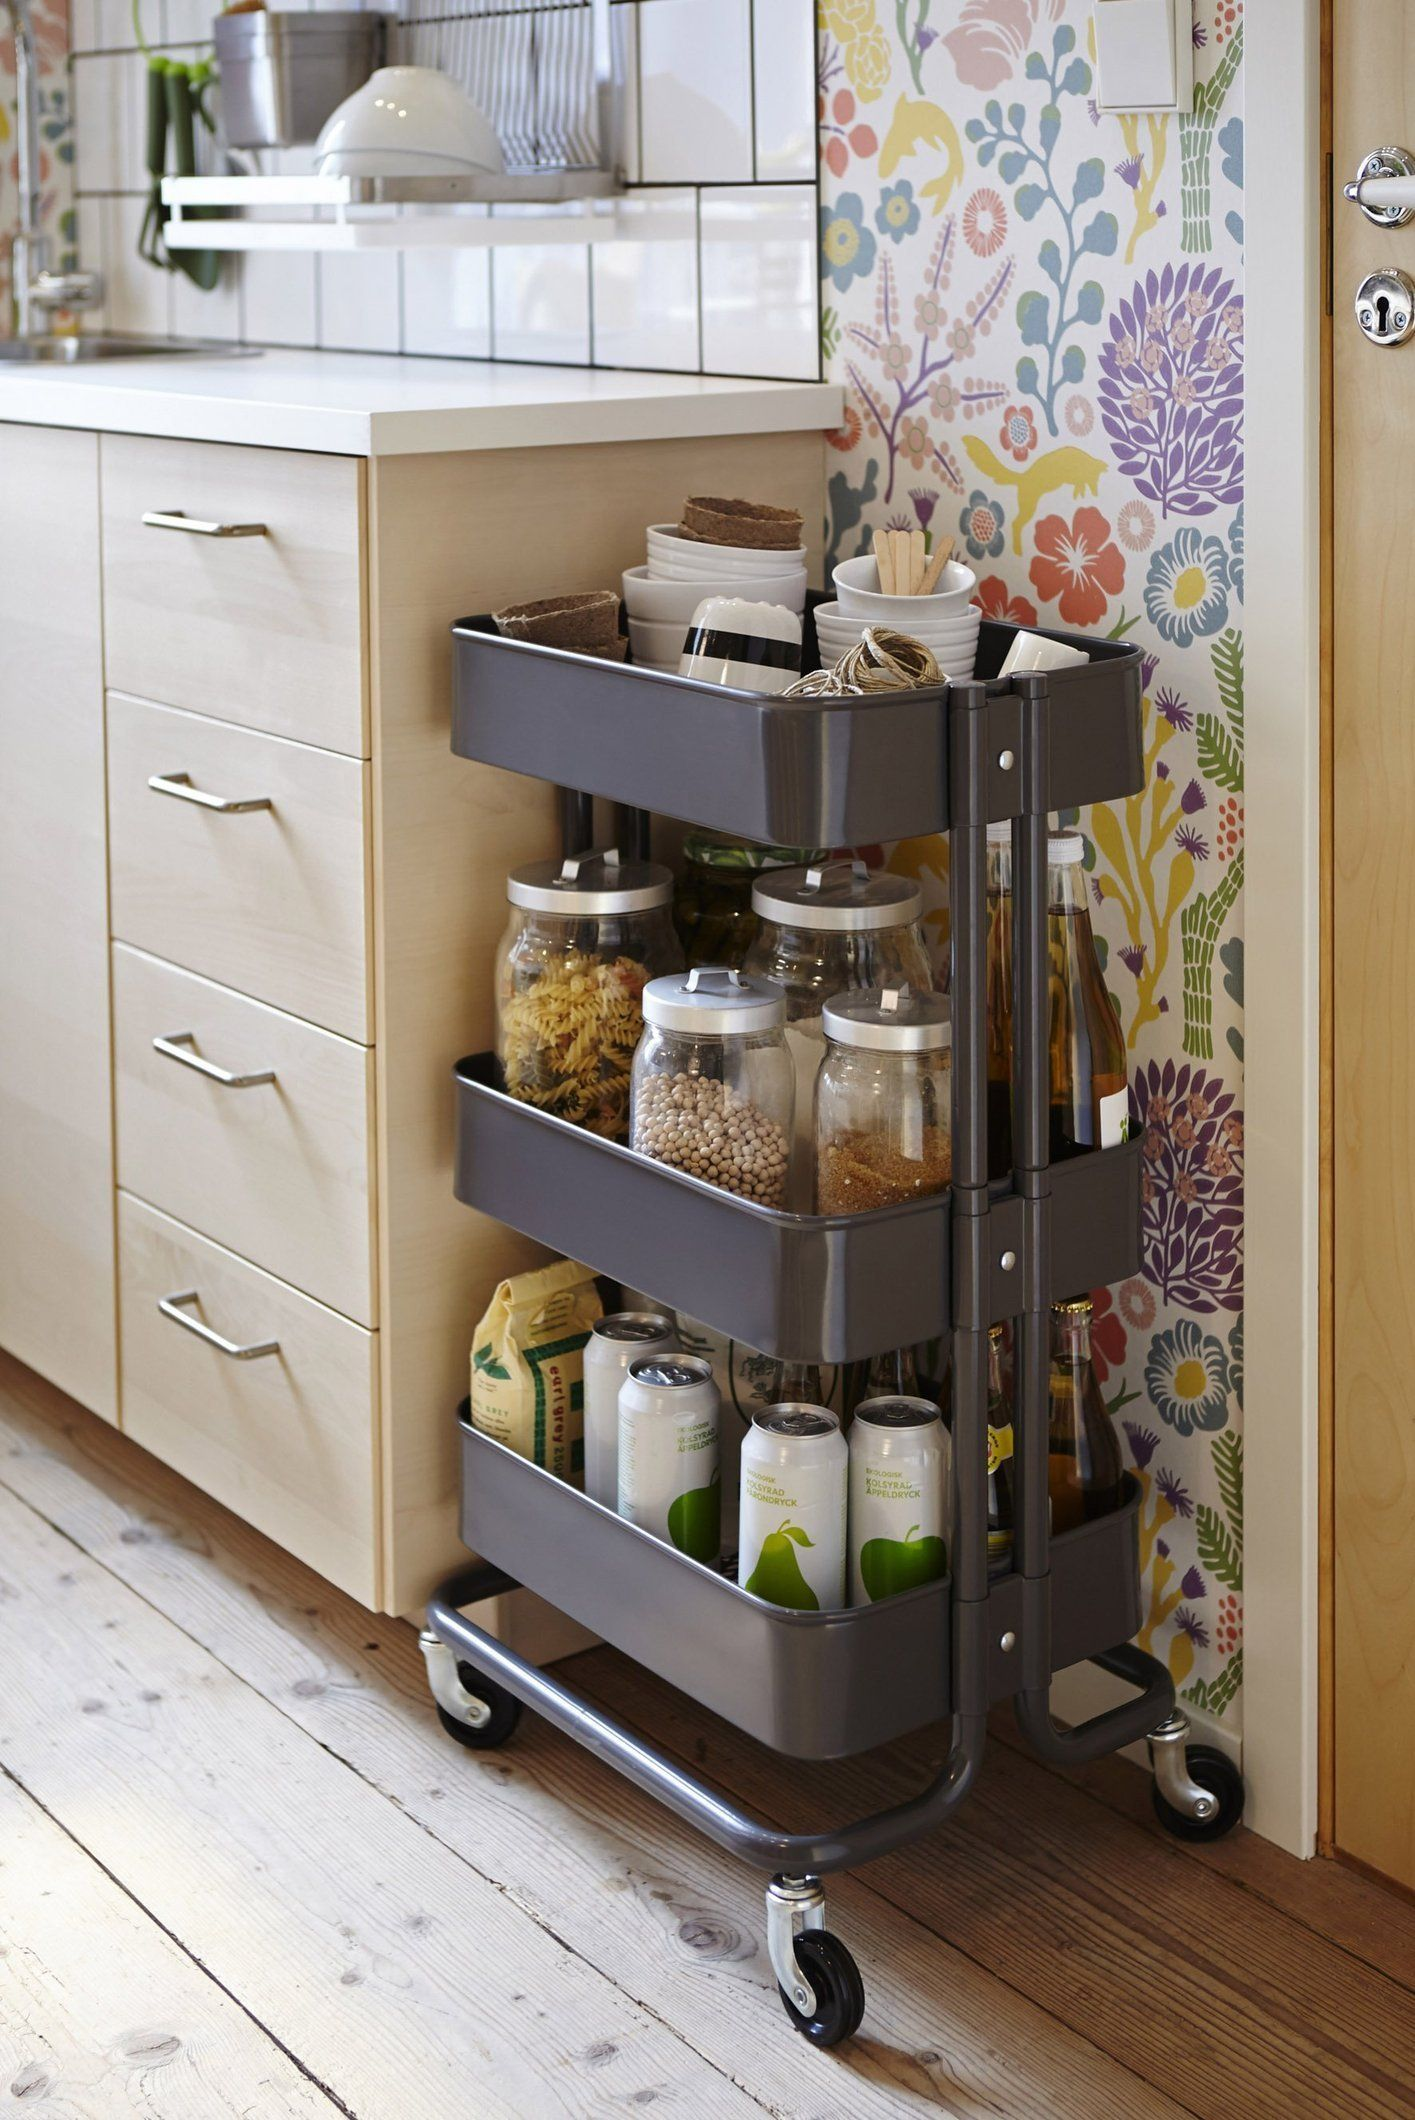 Show Us Ikea S Super Fantastic Cult Favorite RÅskog Cart And We Ll You 15 Ways Can Use It Around The Kitchen As I Ve Mentioned Before